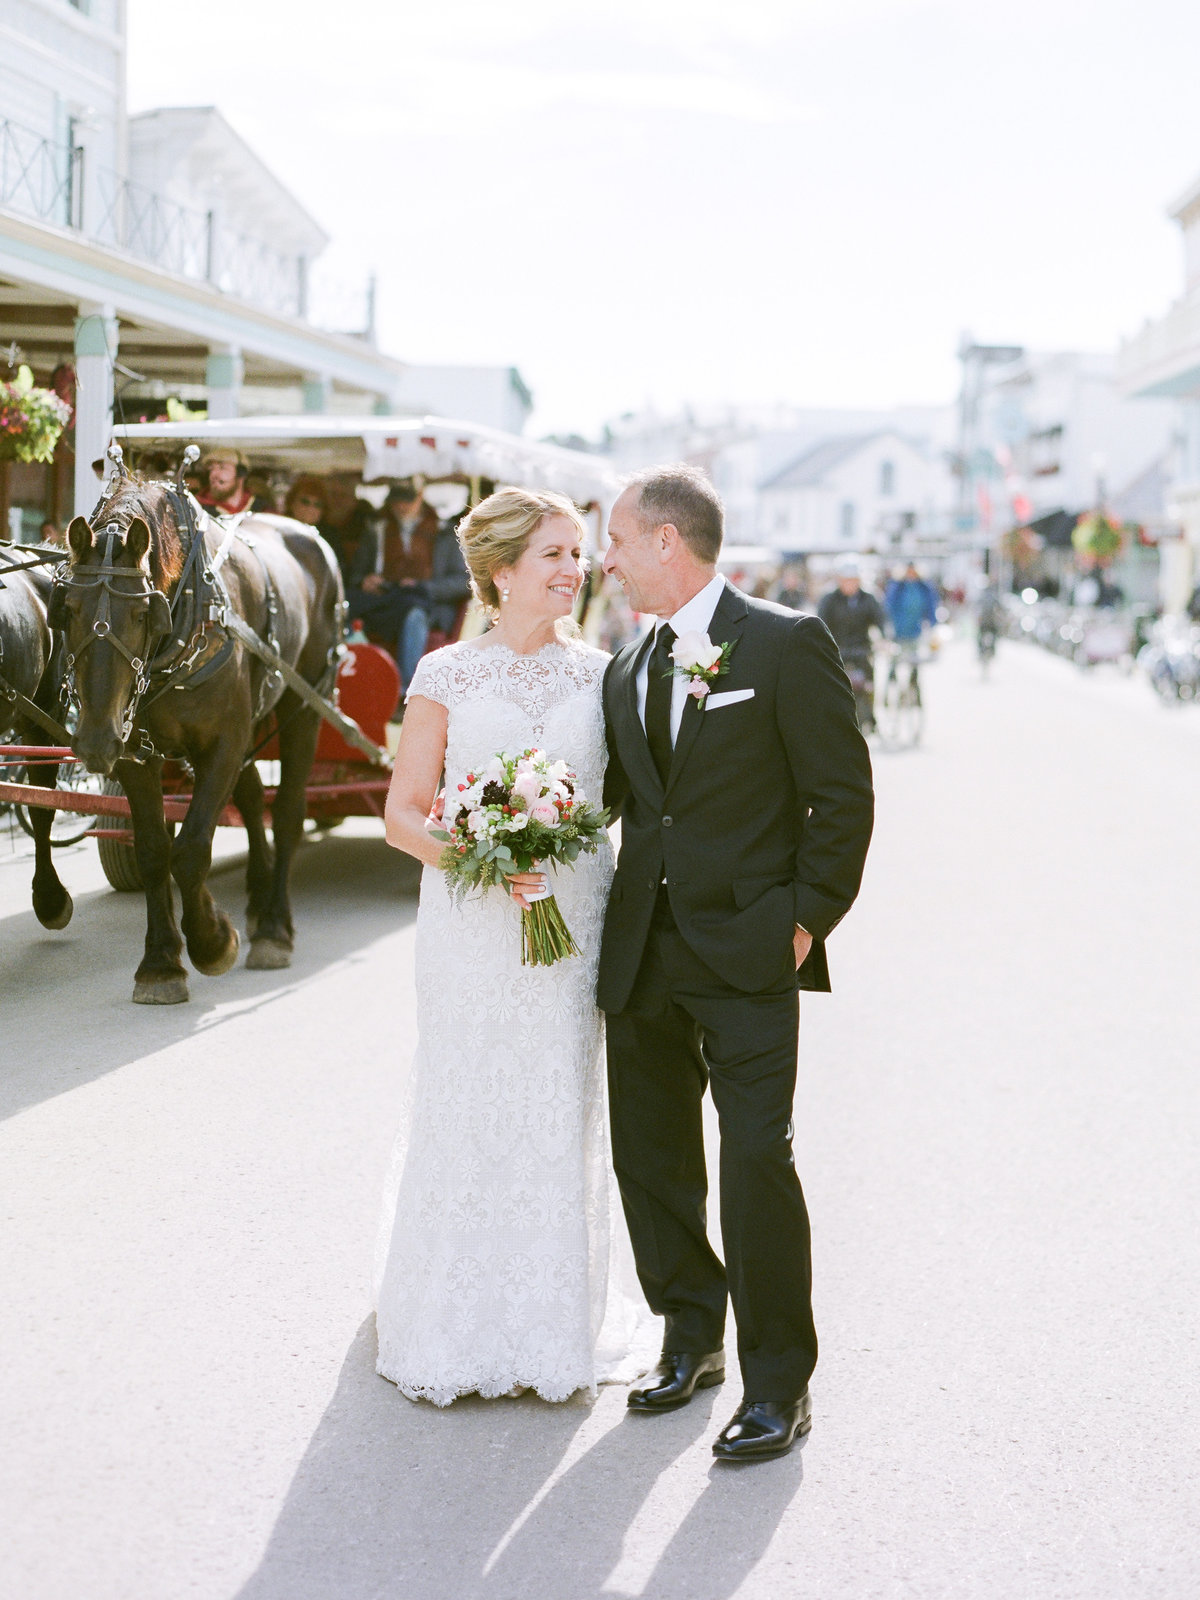 Mackinac Island Wedding - Debbie-1012